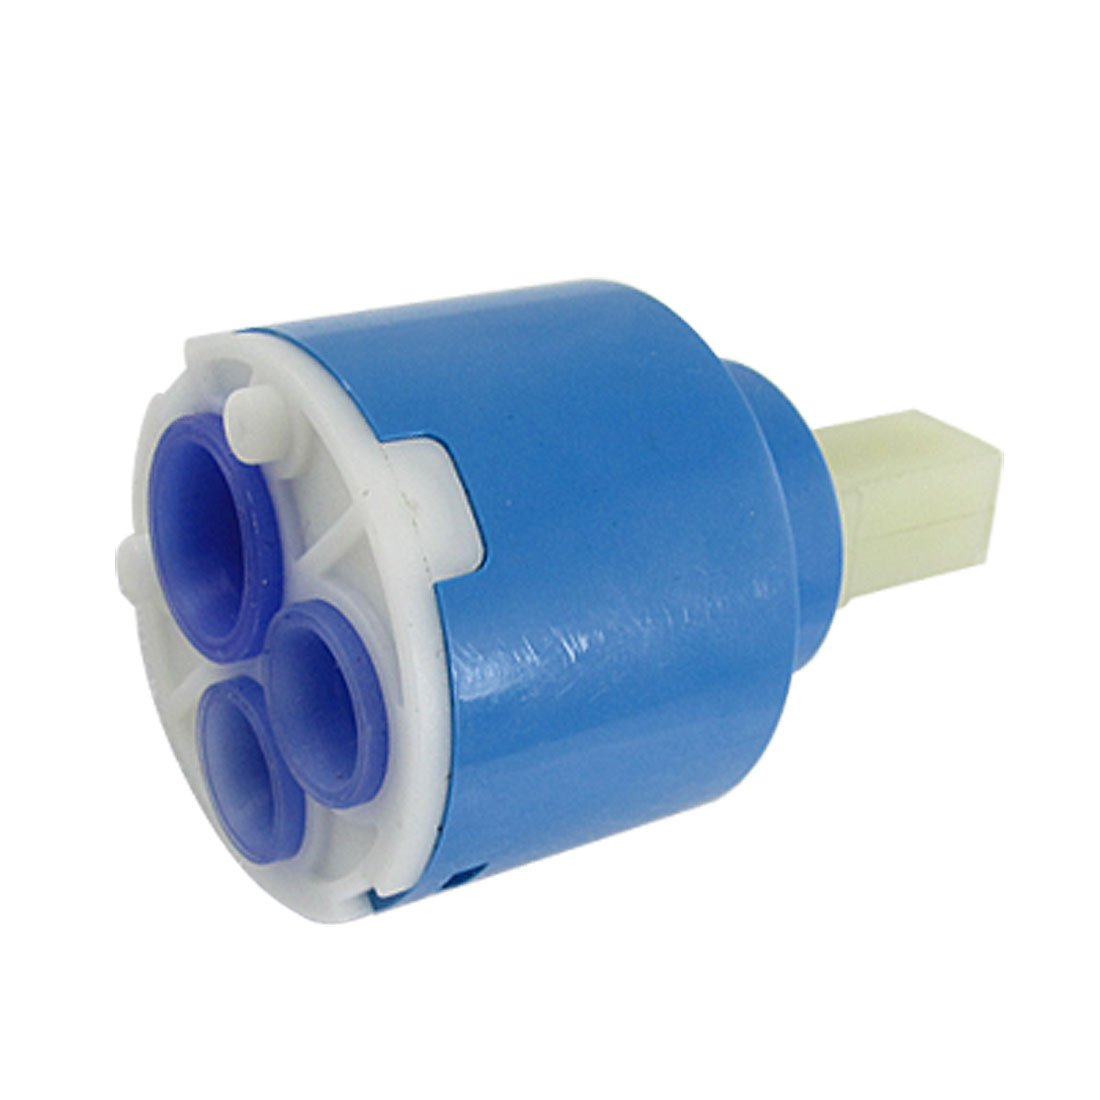 faucet water tap faucets ceramic cartridge valve blue ct cartridge for price pfister body guard single handle